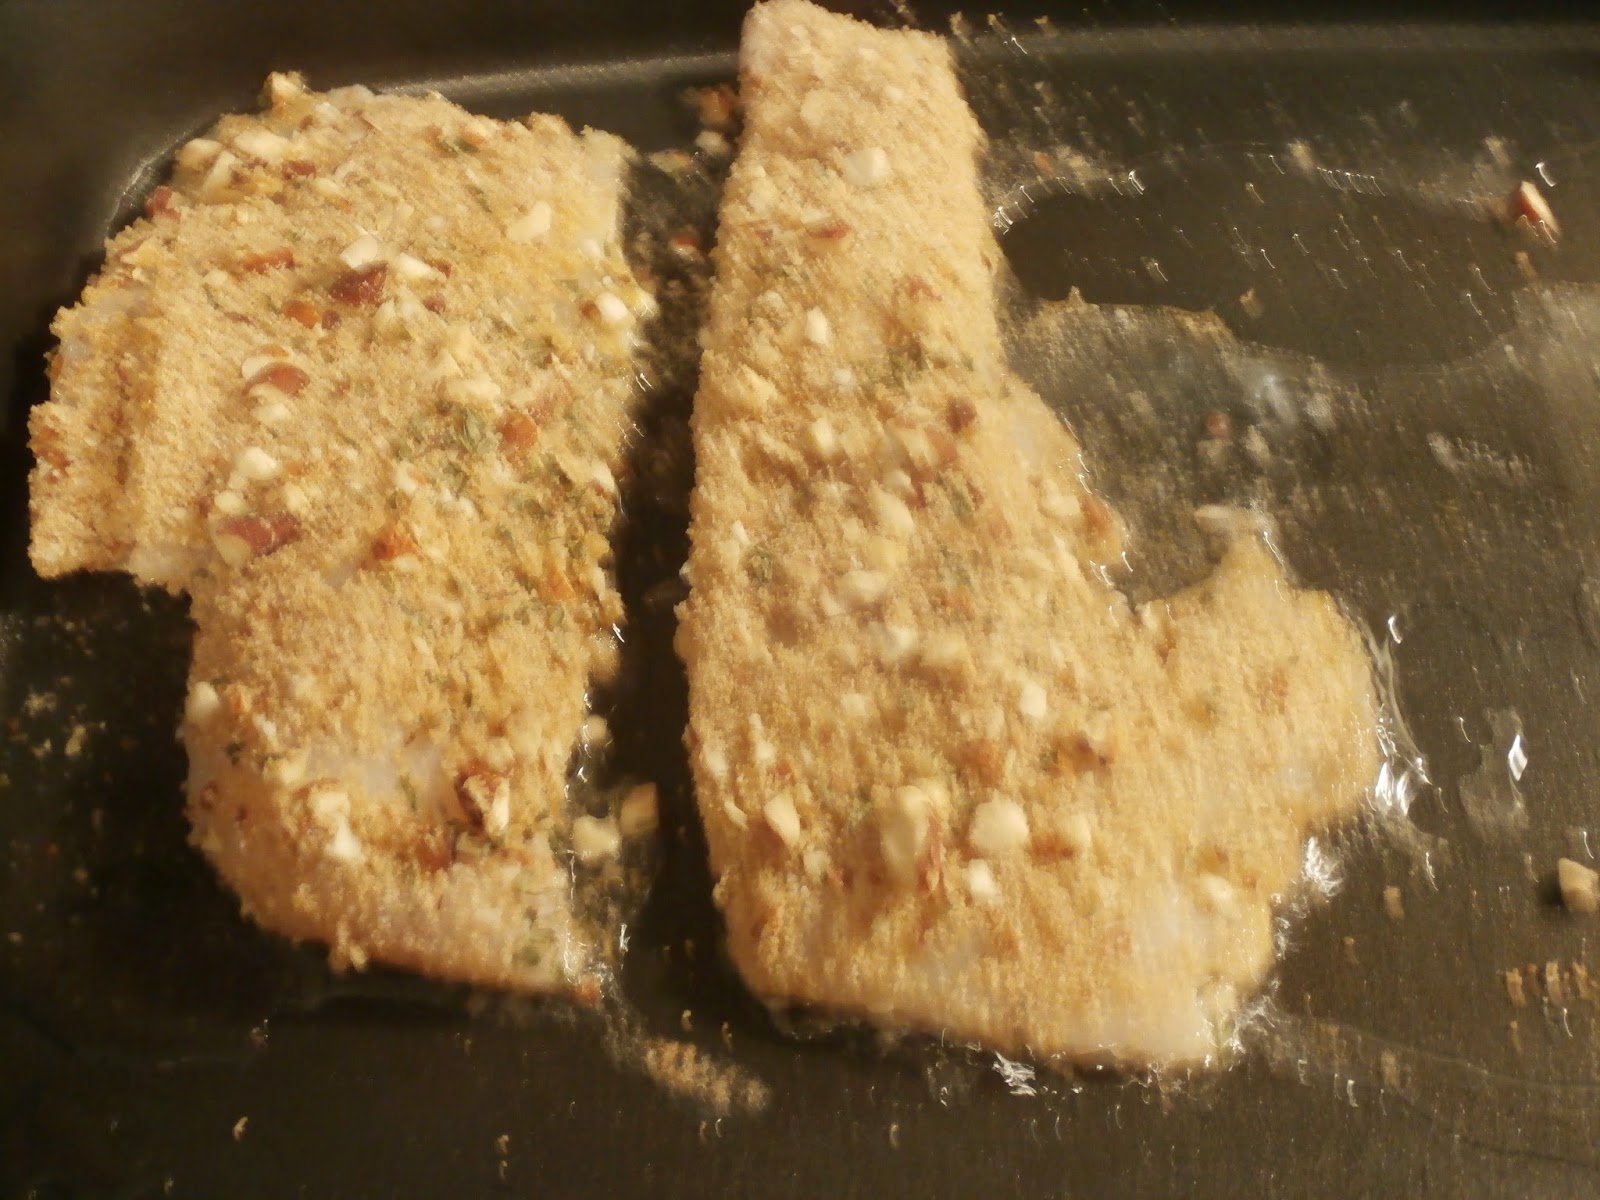 Sam S Place Almond Crusted Fish With Coconut Oil